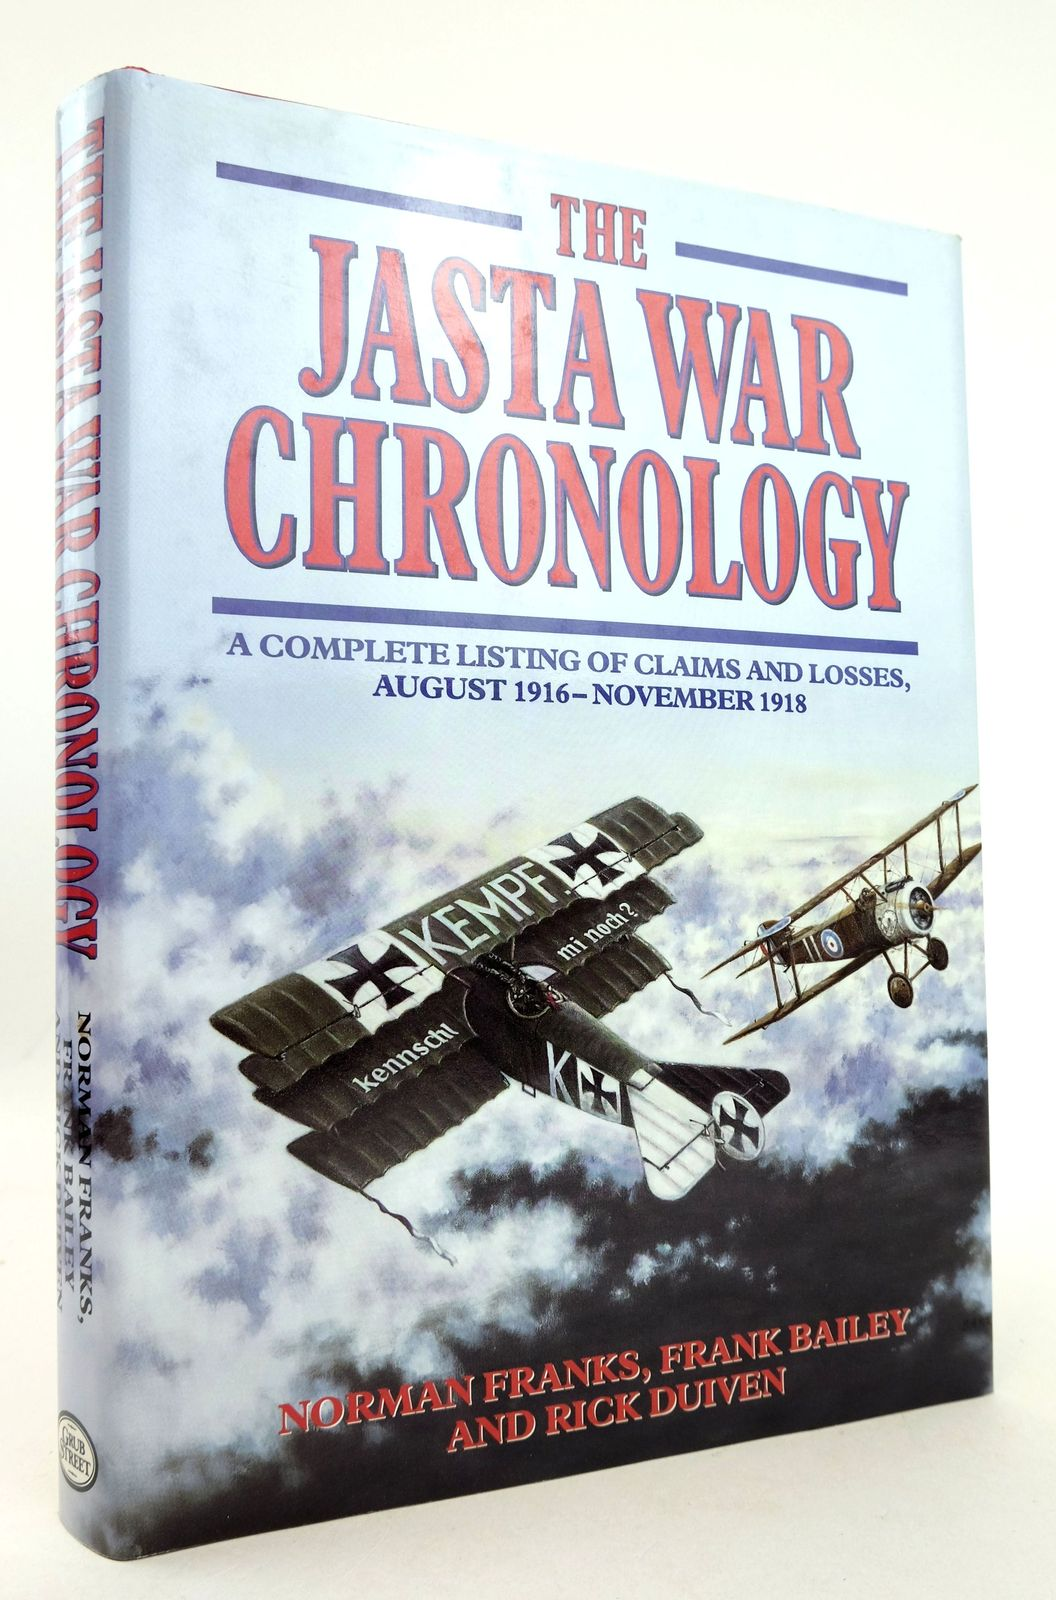 Photo of THE JASTA WAR CHRONOLOGY written by Franks, Norman Bailey, Frank Duiven, Rick published by Grub Street (STOCK CODE: 1819253)  for sale by Stella & Rose's Books